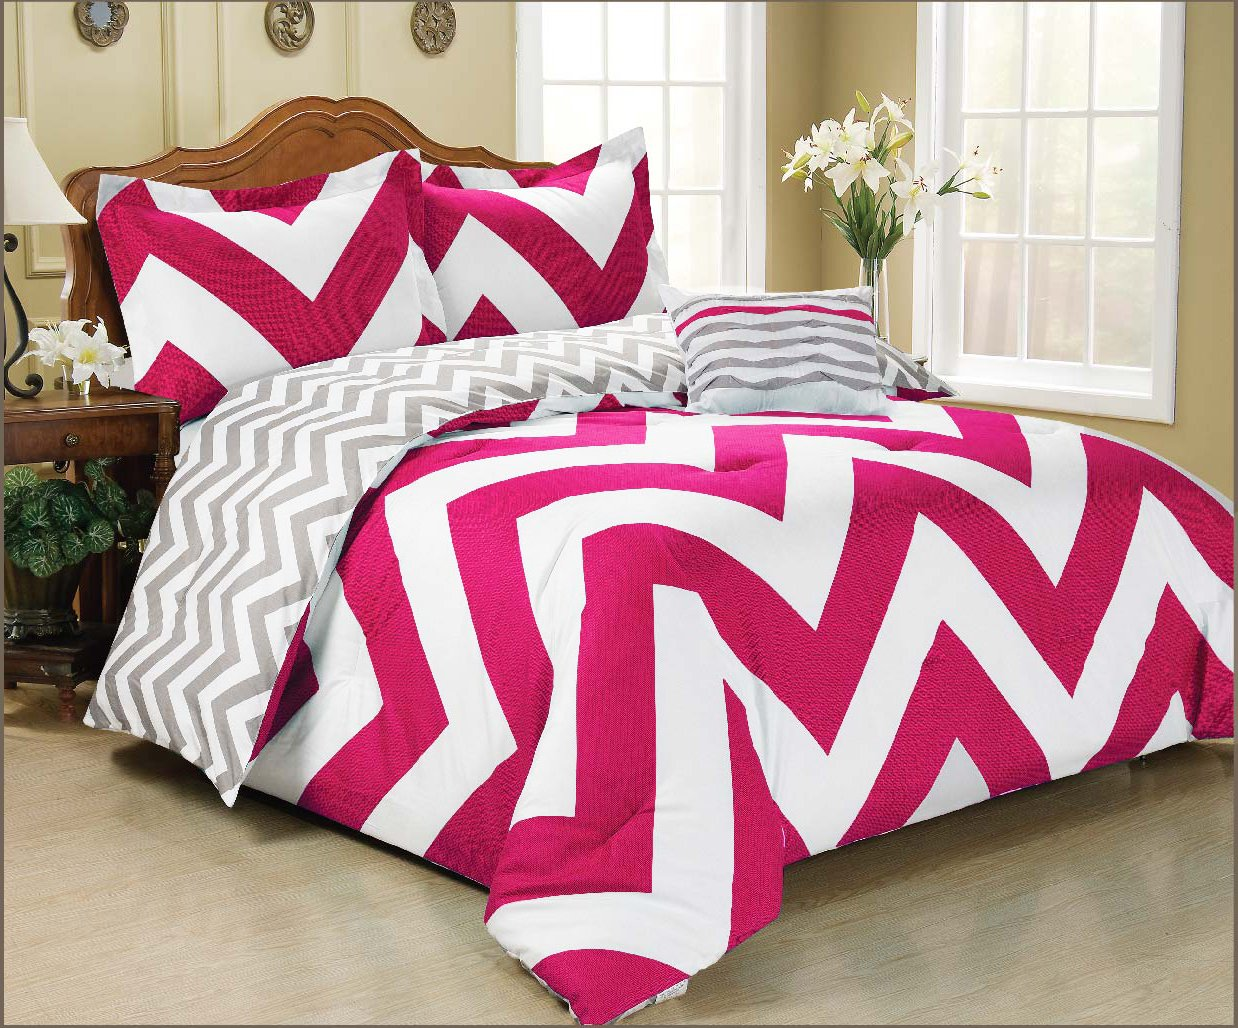 4 Pc Zig Zag Reversible Chevron Comforter Set Hot Pink Grey White New Bedding Set